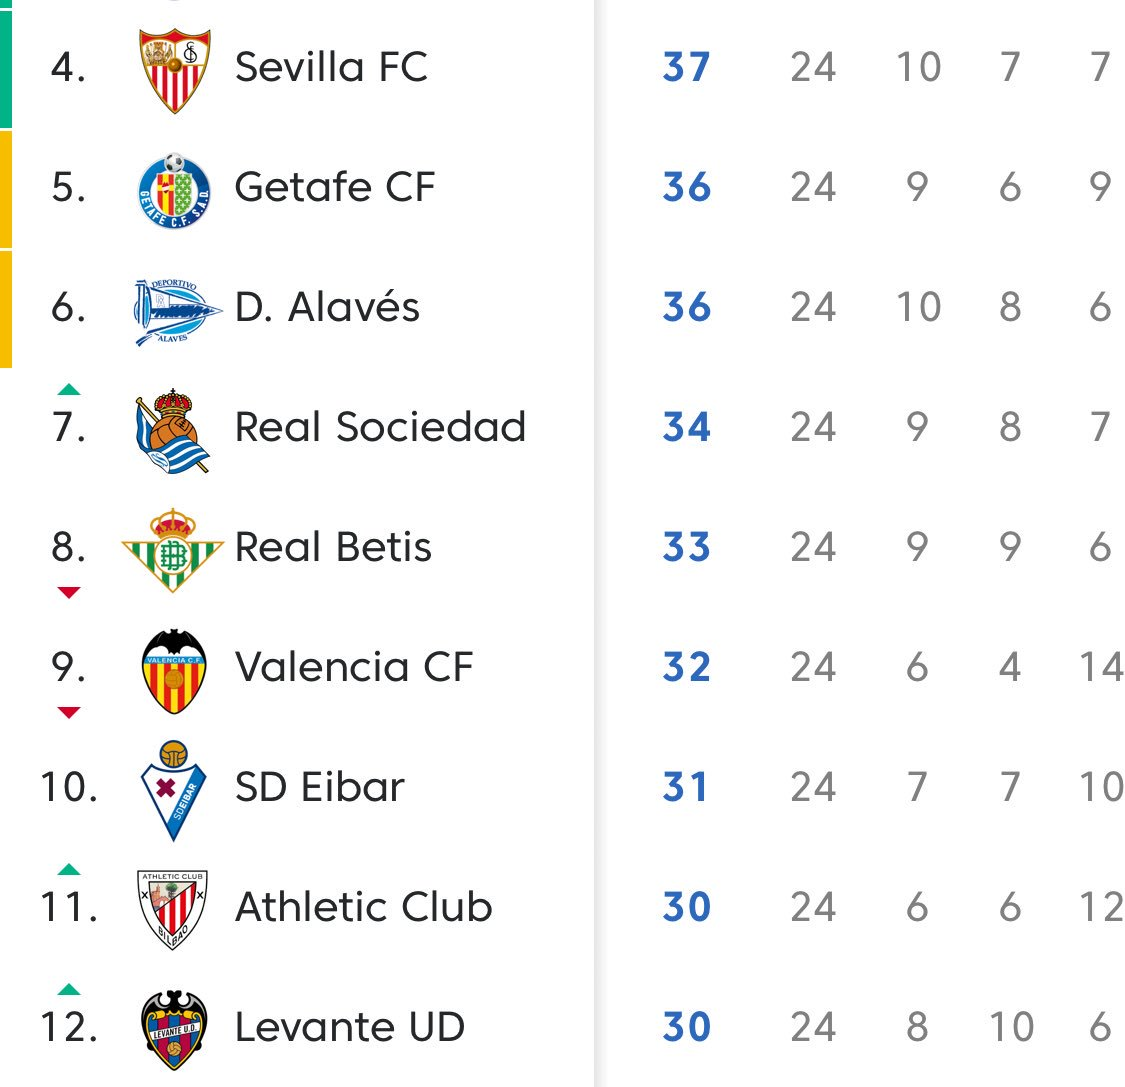 And some of whom will be looking above that too of course...that final Champions League place within semi-realistic reach for as many as 7(?) or 9(?) teams. Still amazing to see Getafe and Alaves so close.